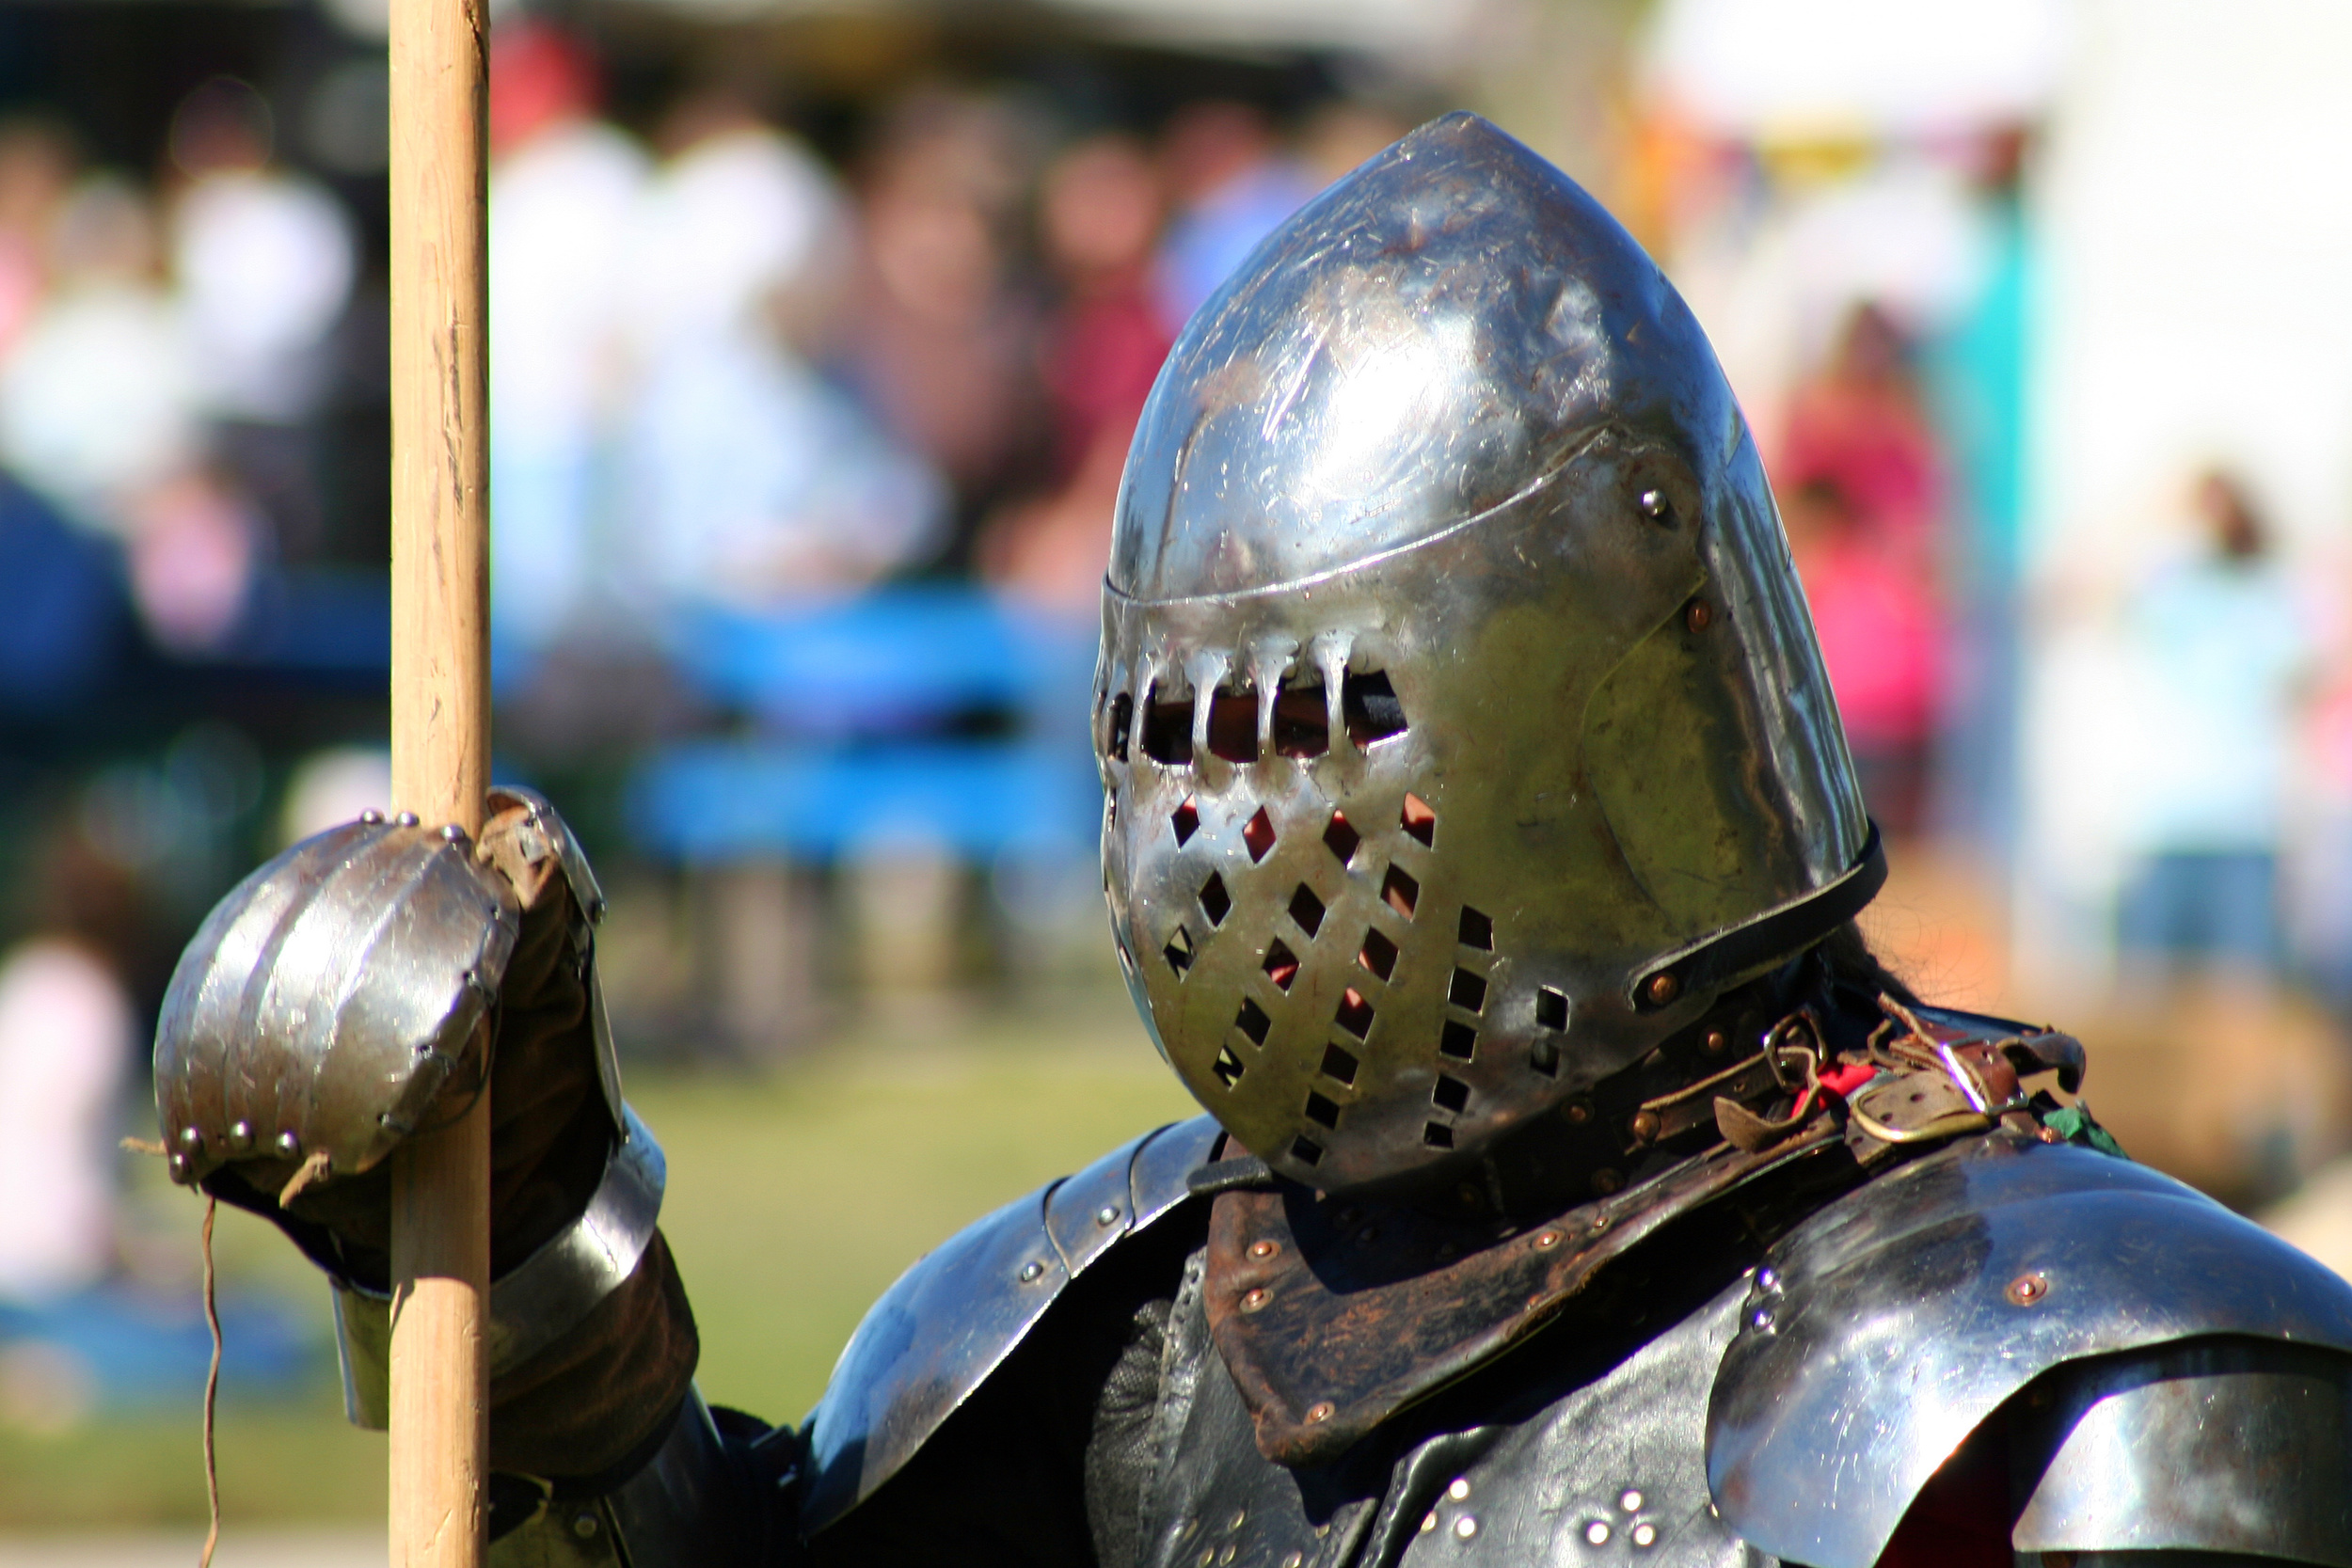 You don't have to wear armor to enjoy mead!